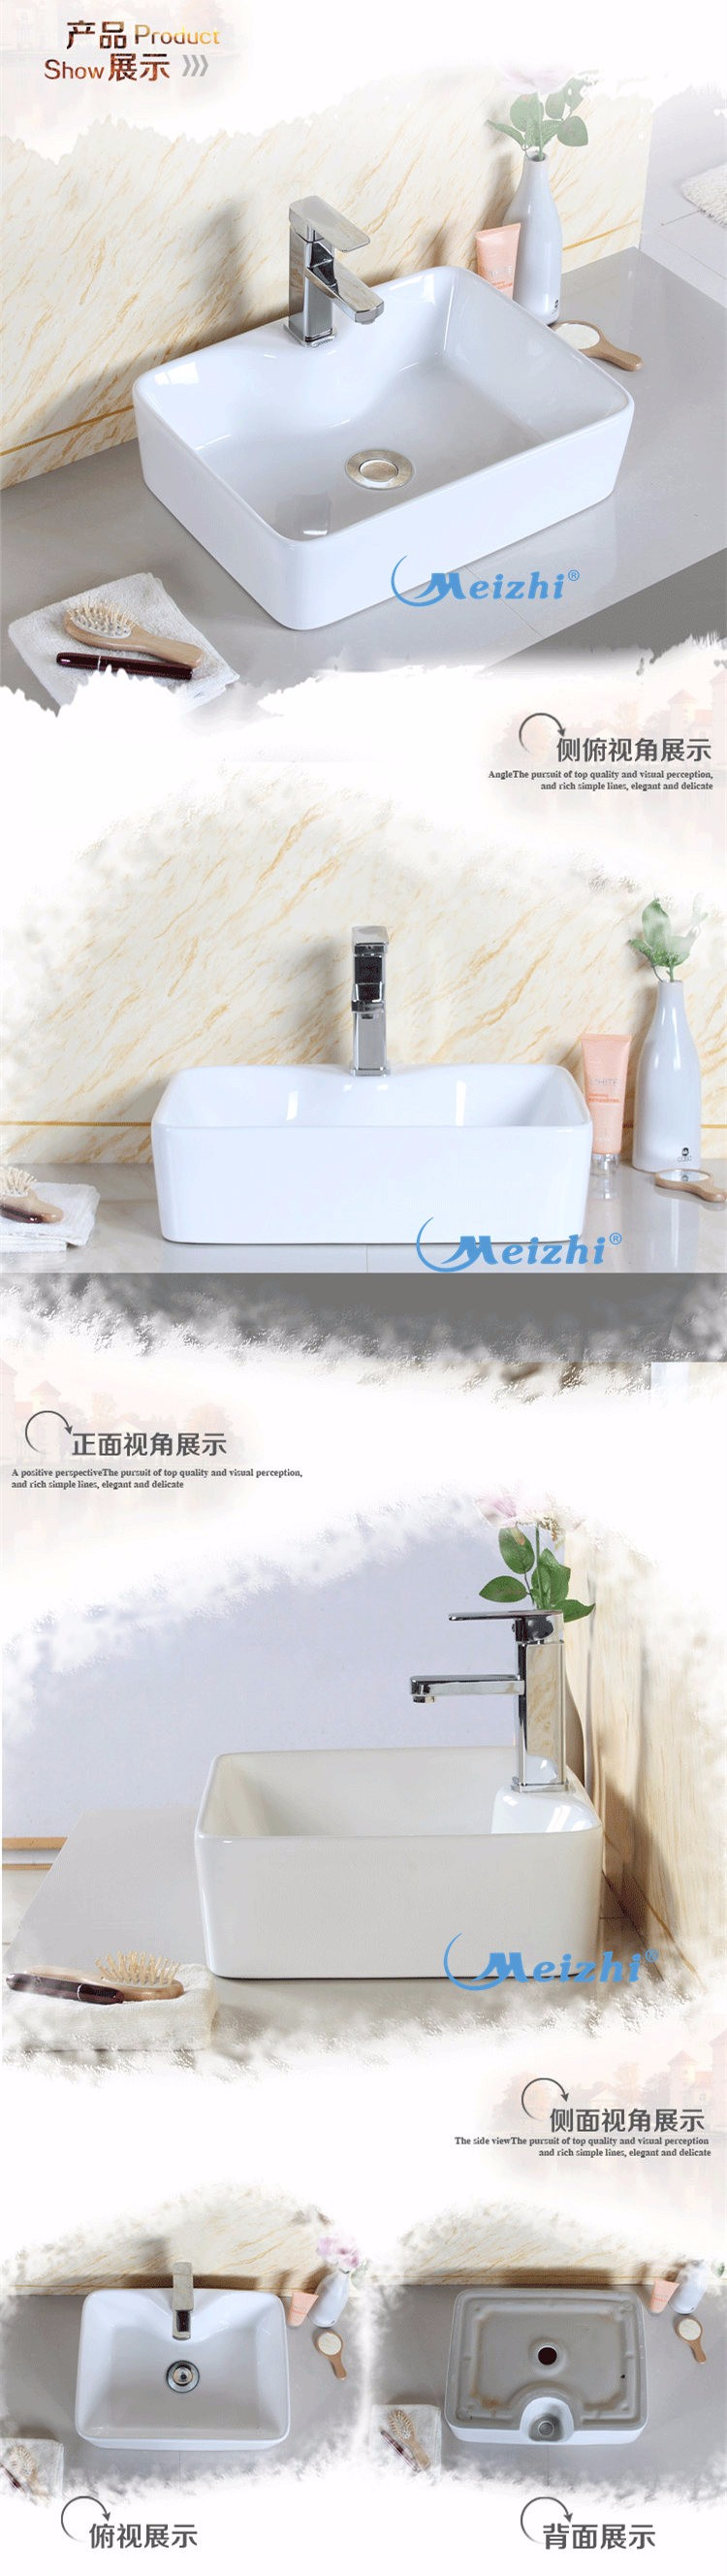 Luxury wash basin designs in india with price